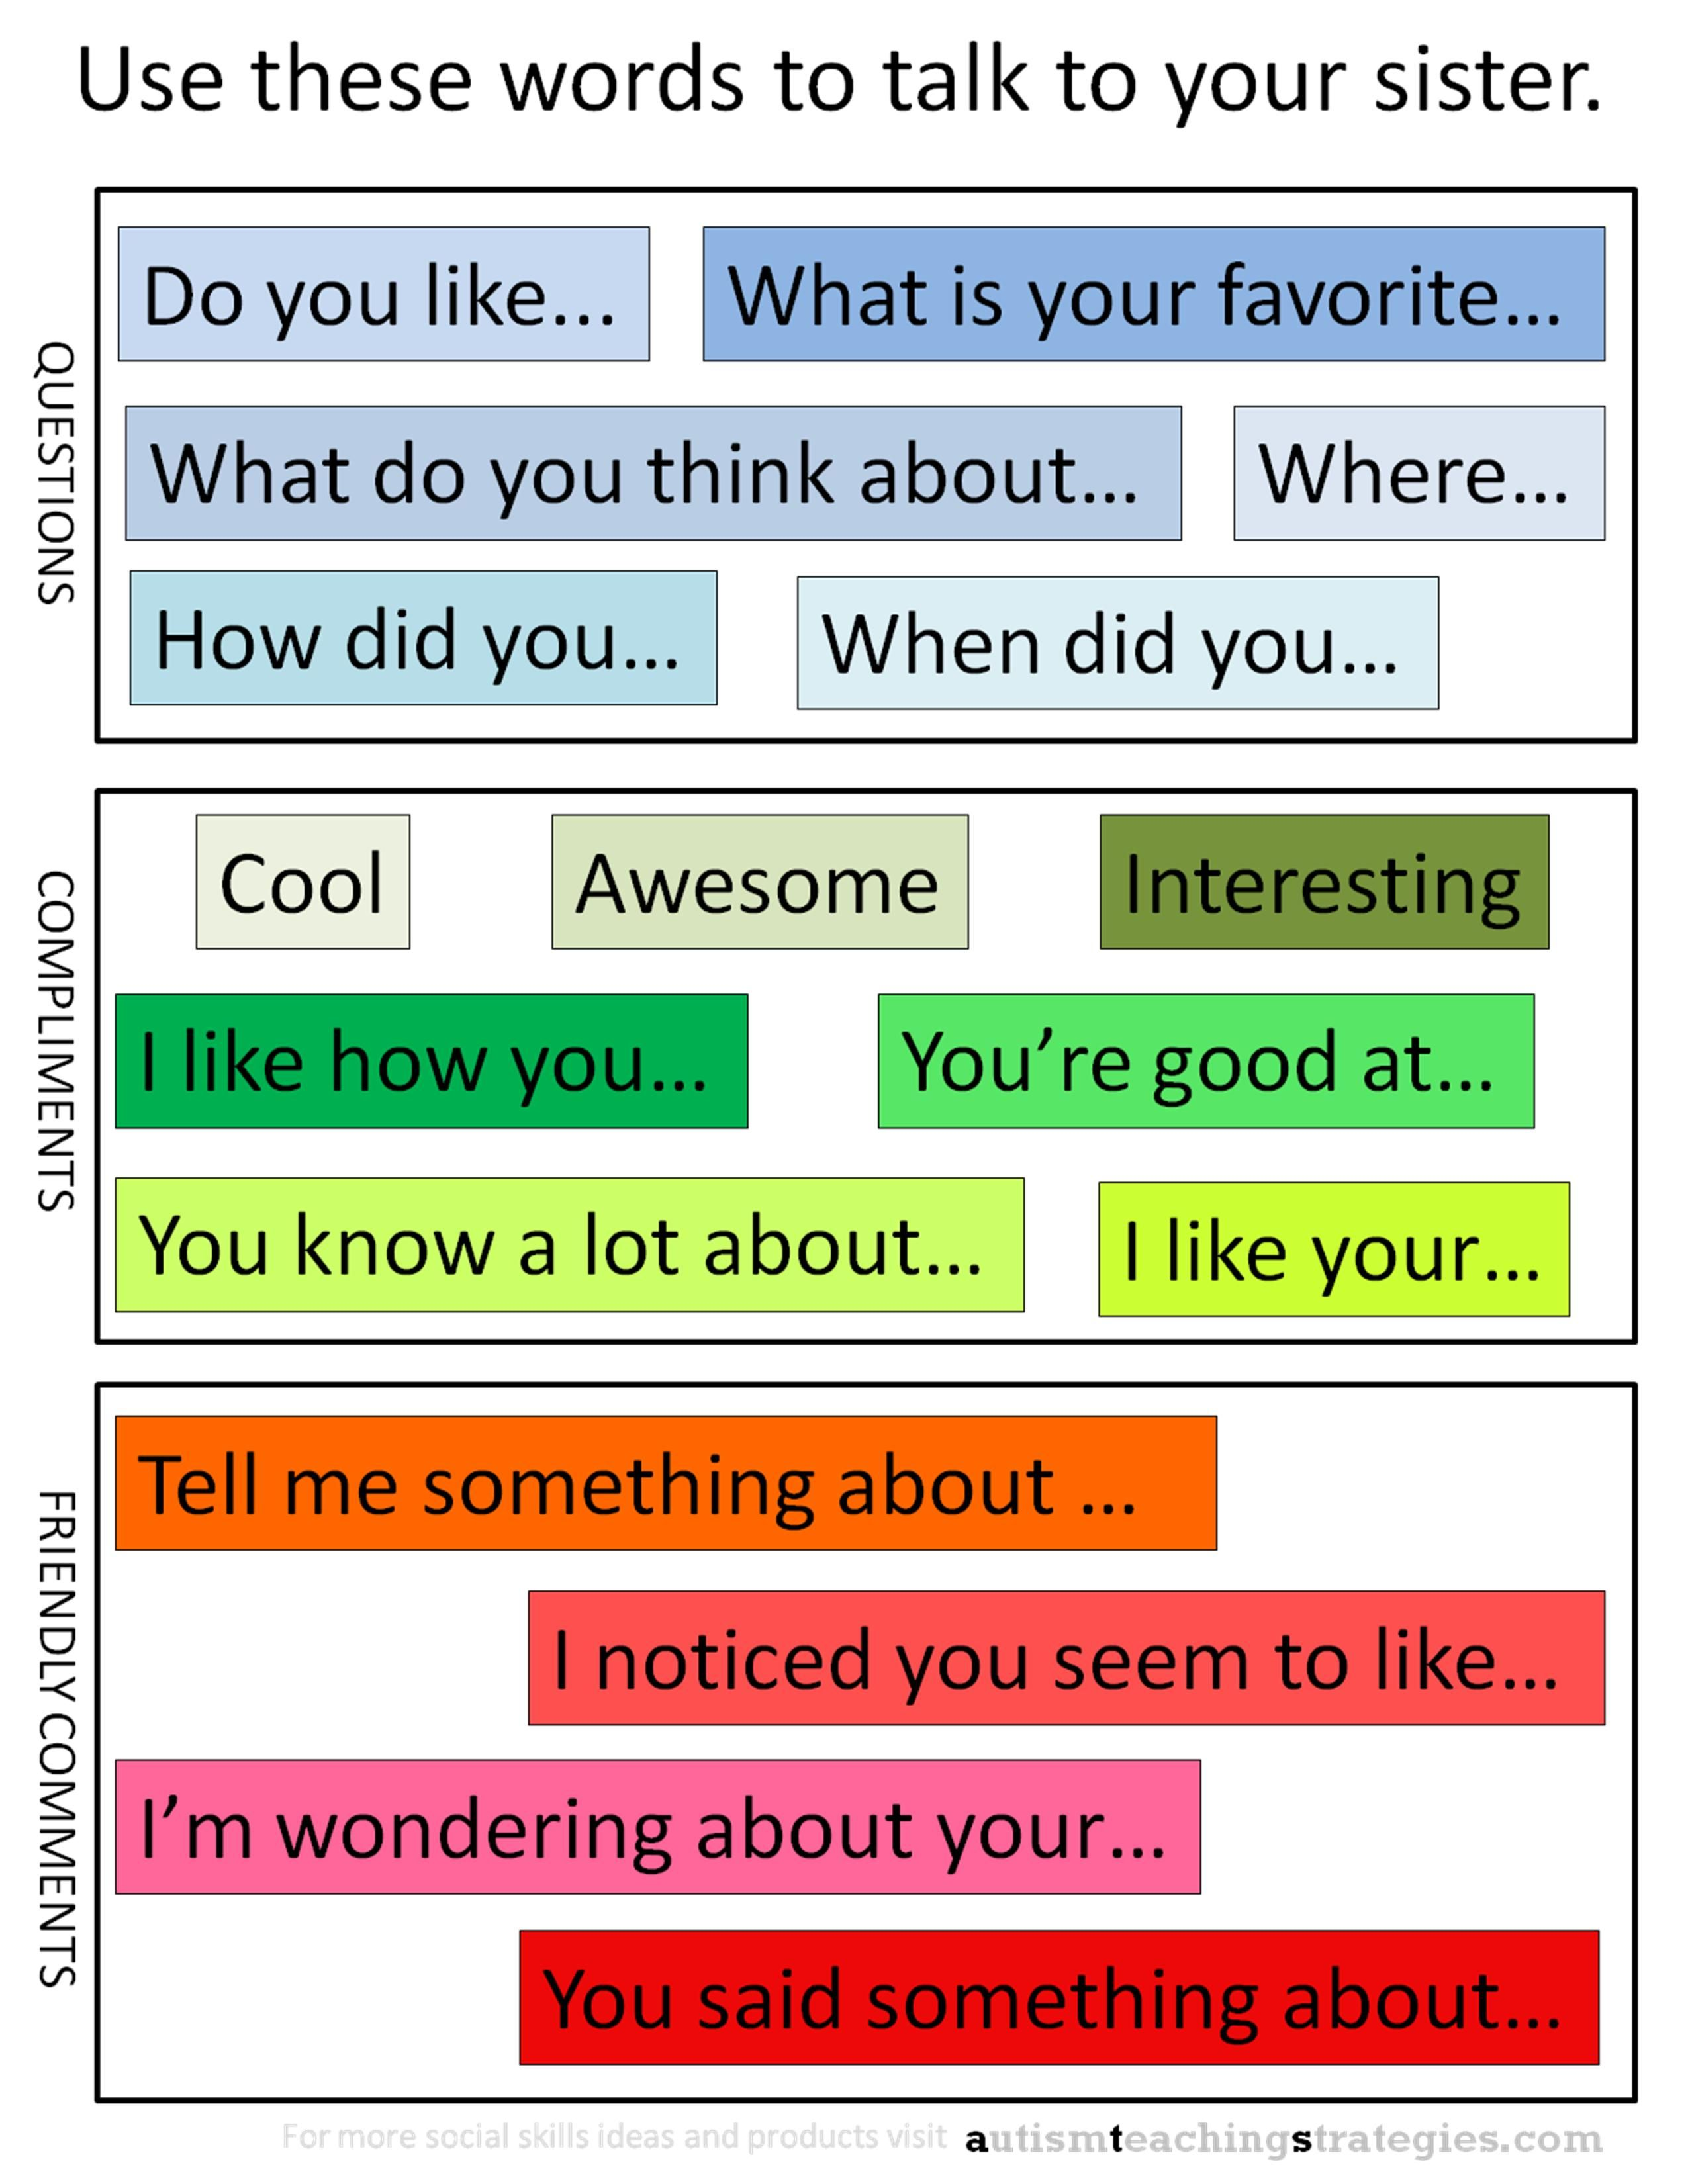 Teaching The Skill Of Conversation And Attitude We Need